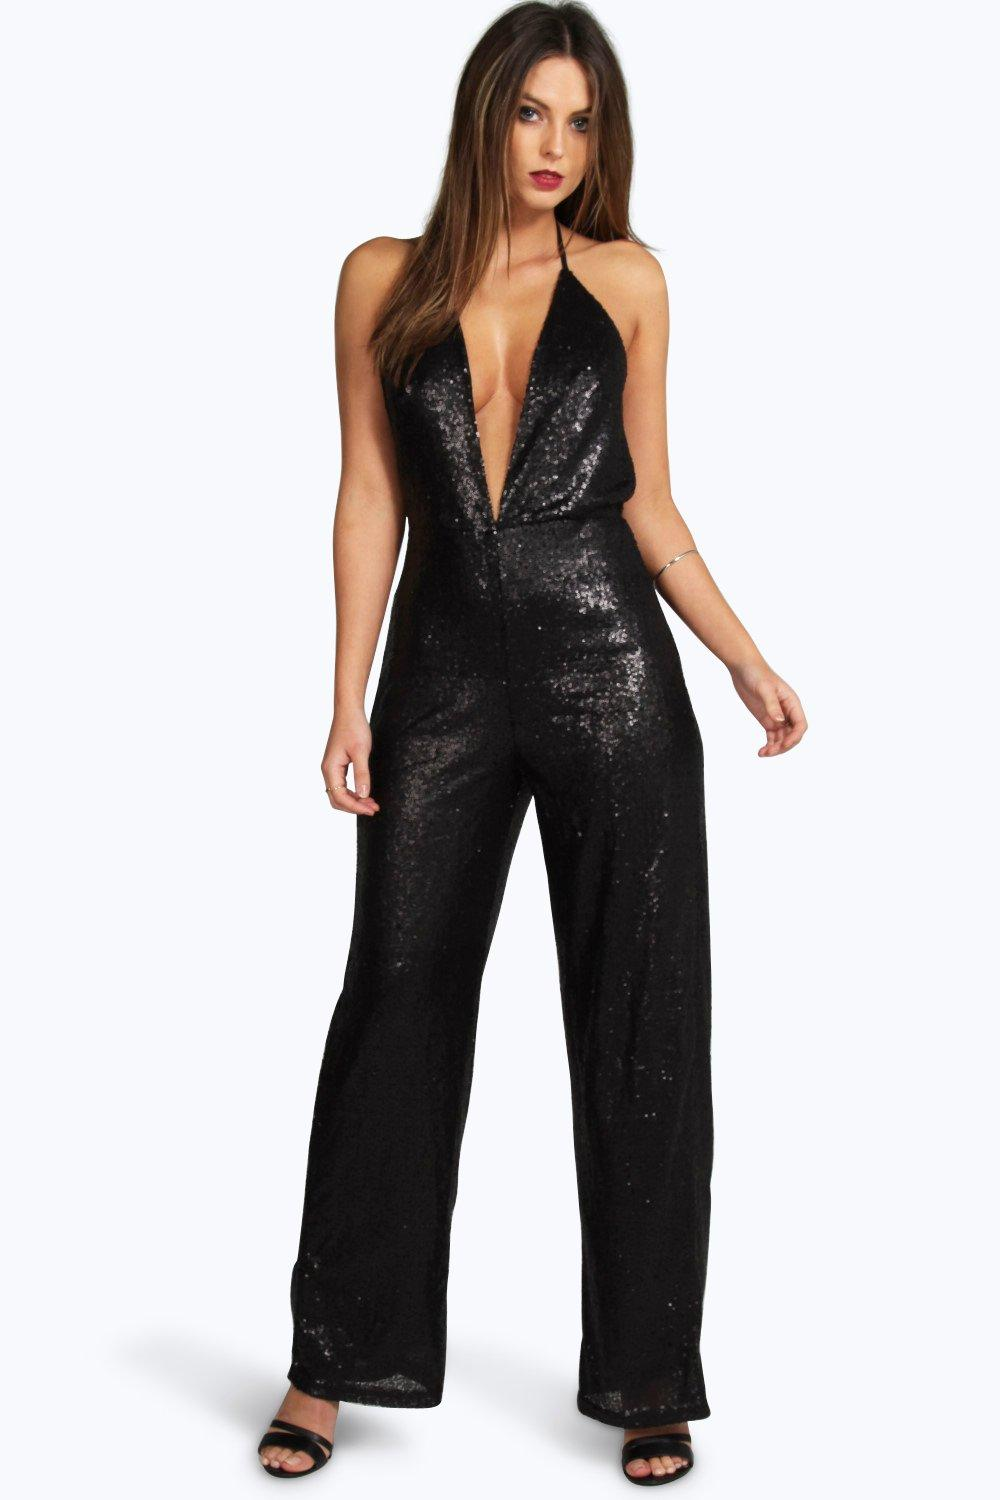 Boutique Lisa Deep Plunge Strappy Sequin Jumpsuit